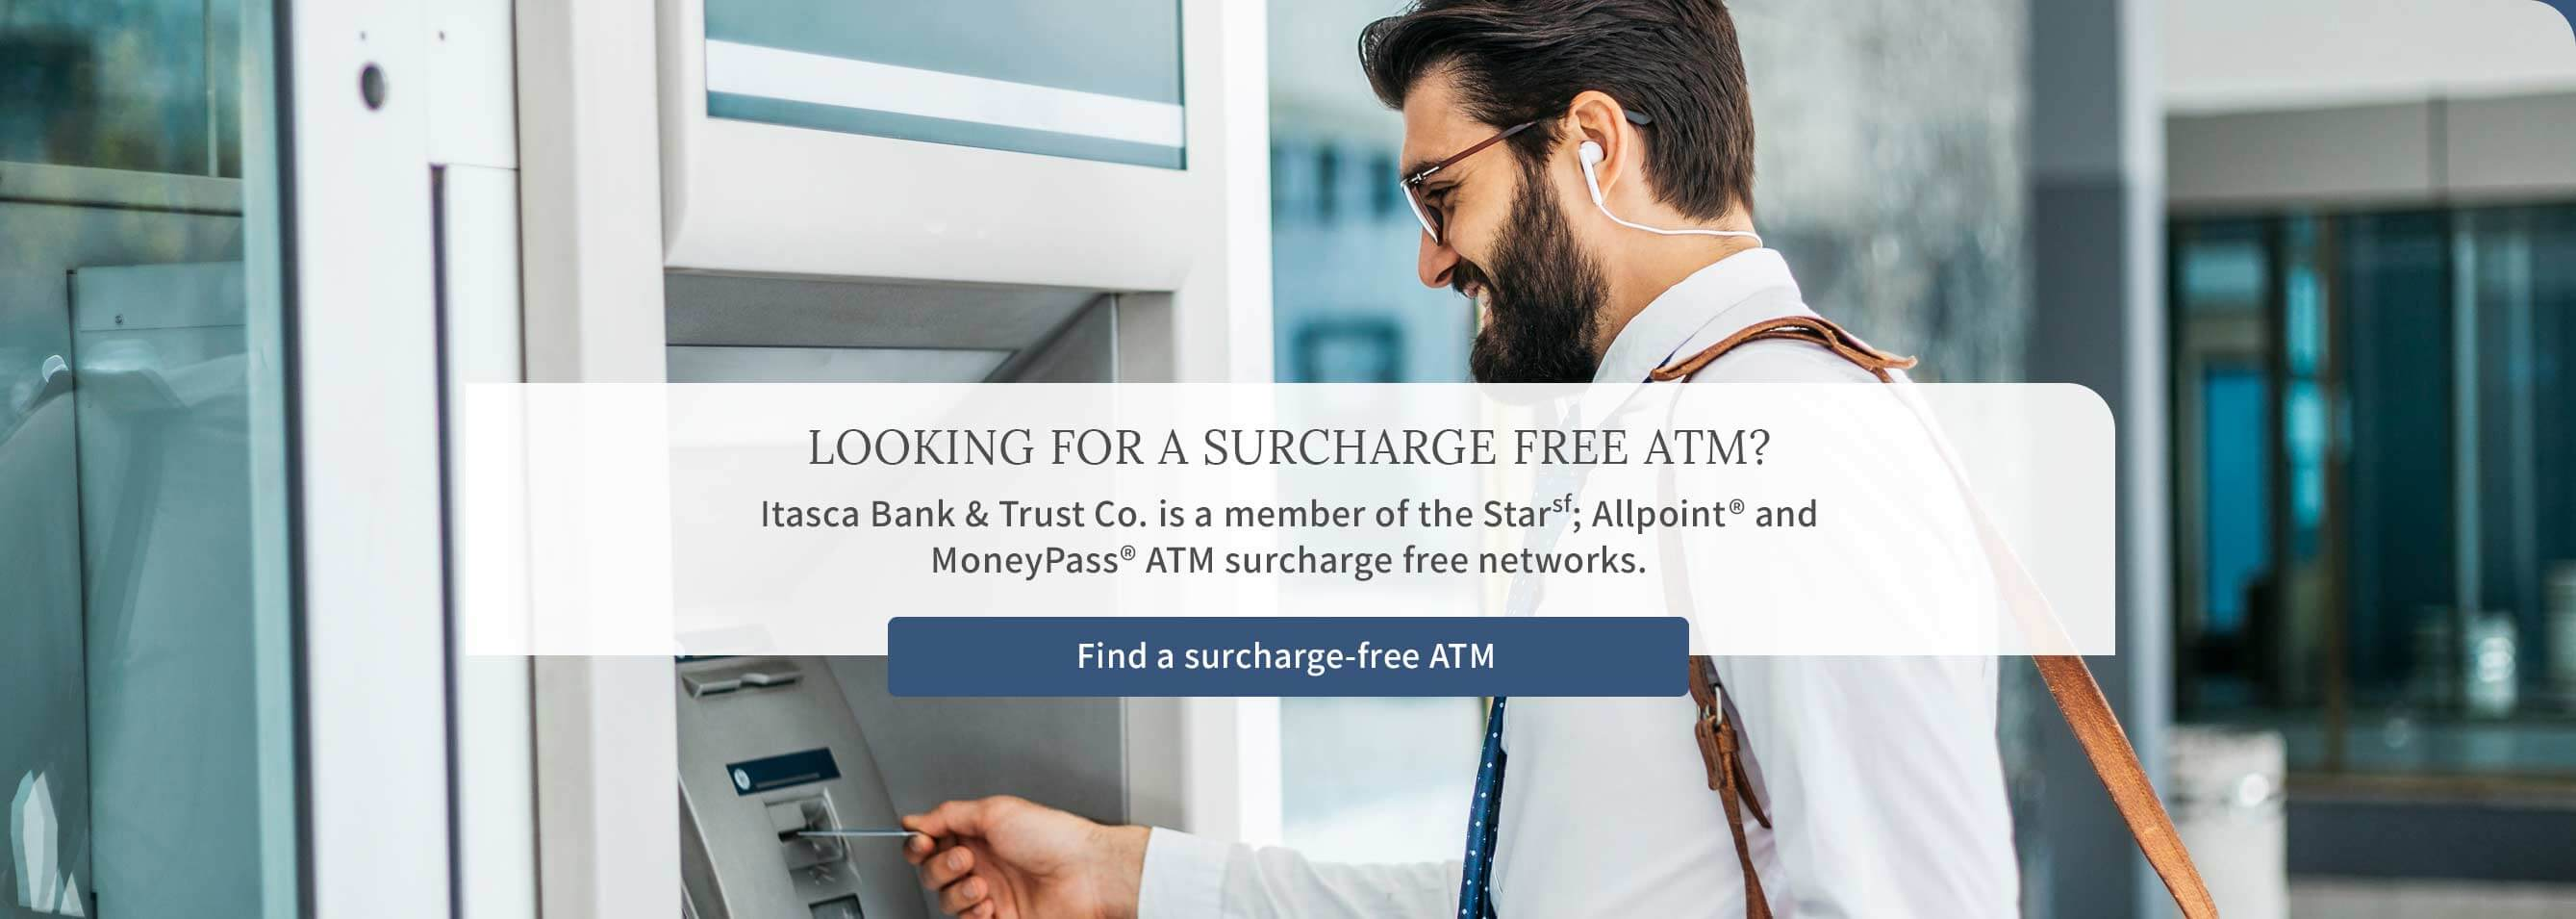 LOOKING FOR A SURCHARGE FREE ATM? Itasca Bank & Trust Co. is a member of the Starsf; Allpoint® and MoneyPass® ATM surcharge free networks. Find a surcharge-free ATM